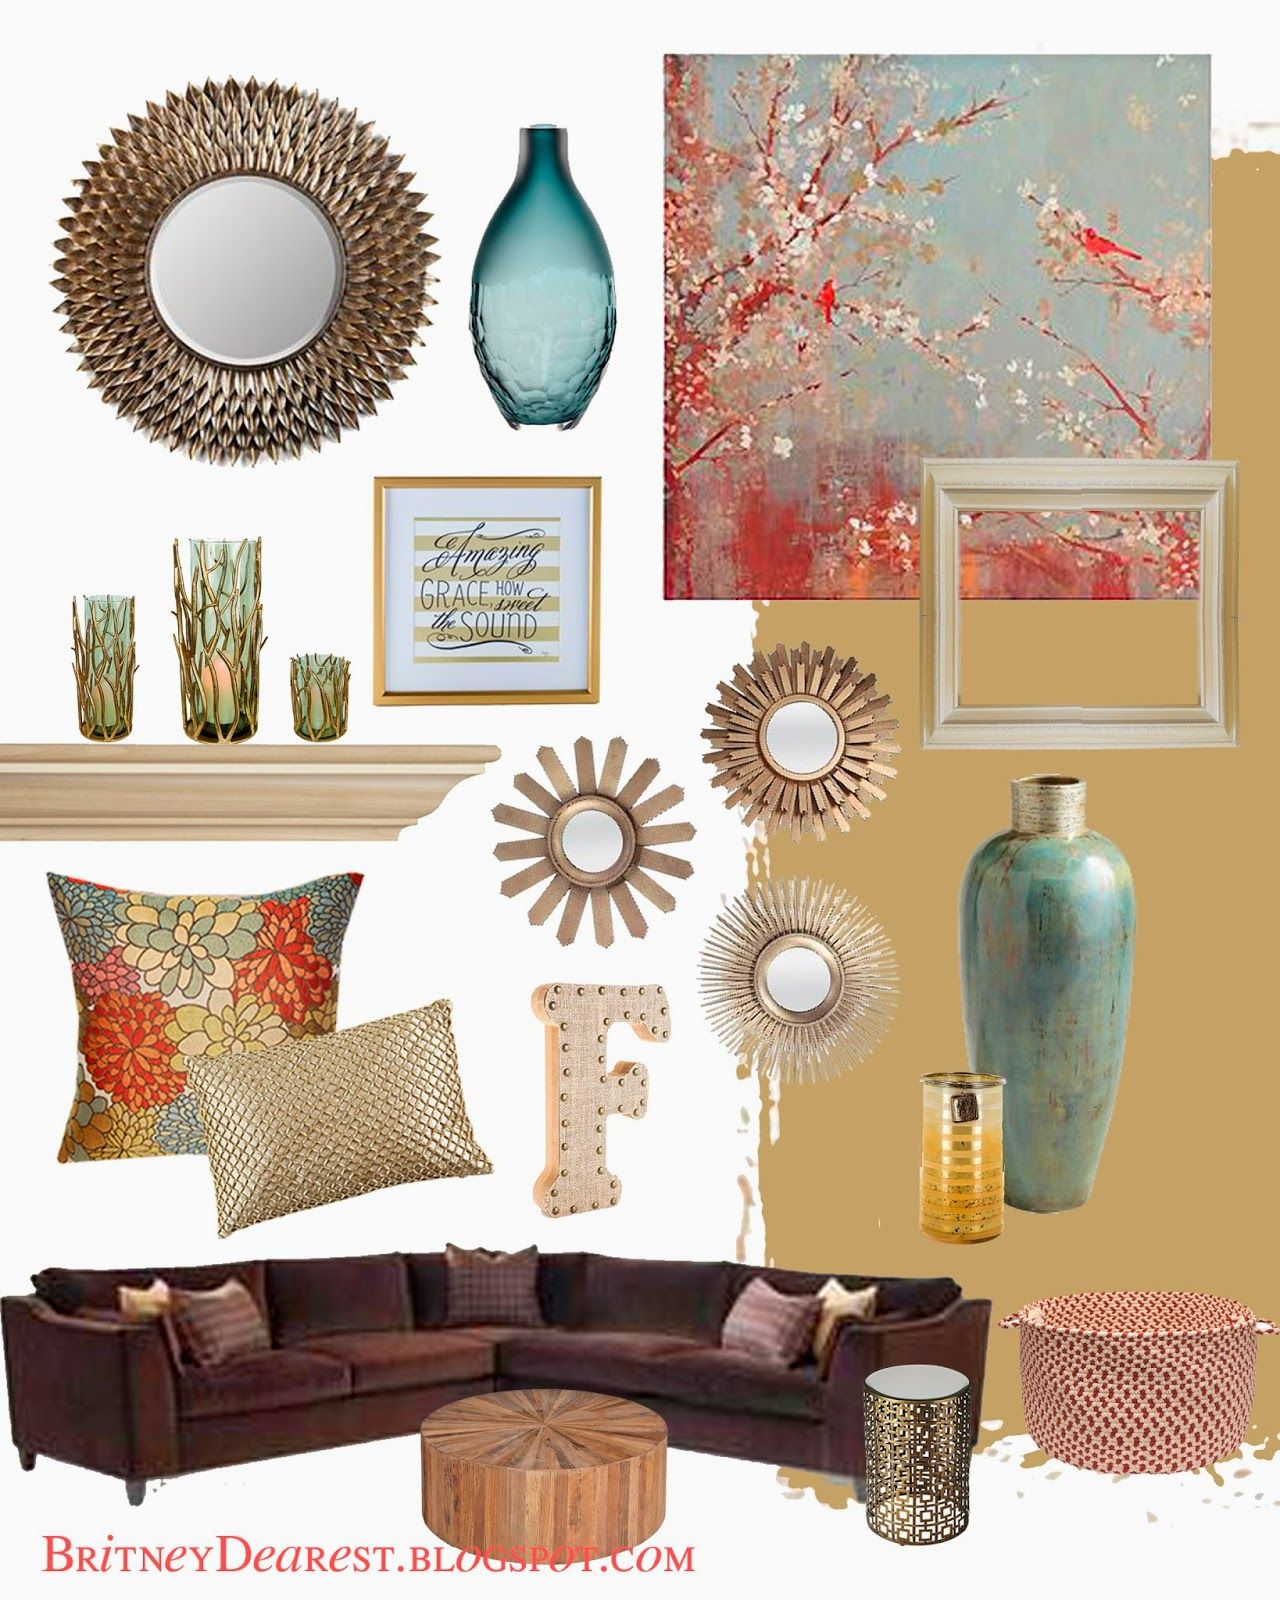 Living Room Style Ideas Home Interior Mood Board Home Decor Tan - Brown and teal living room ideas